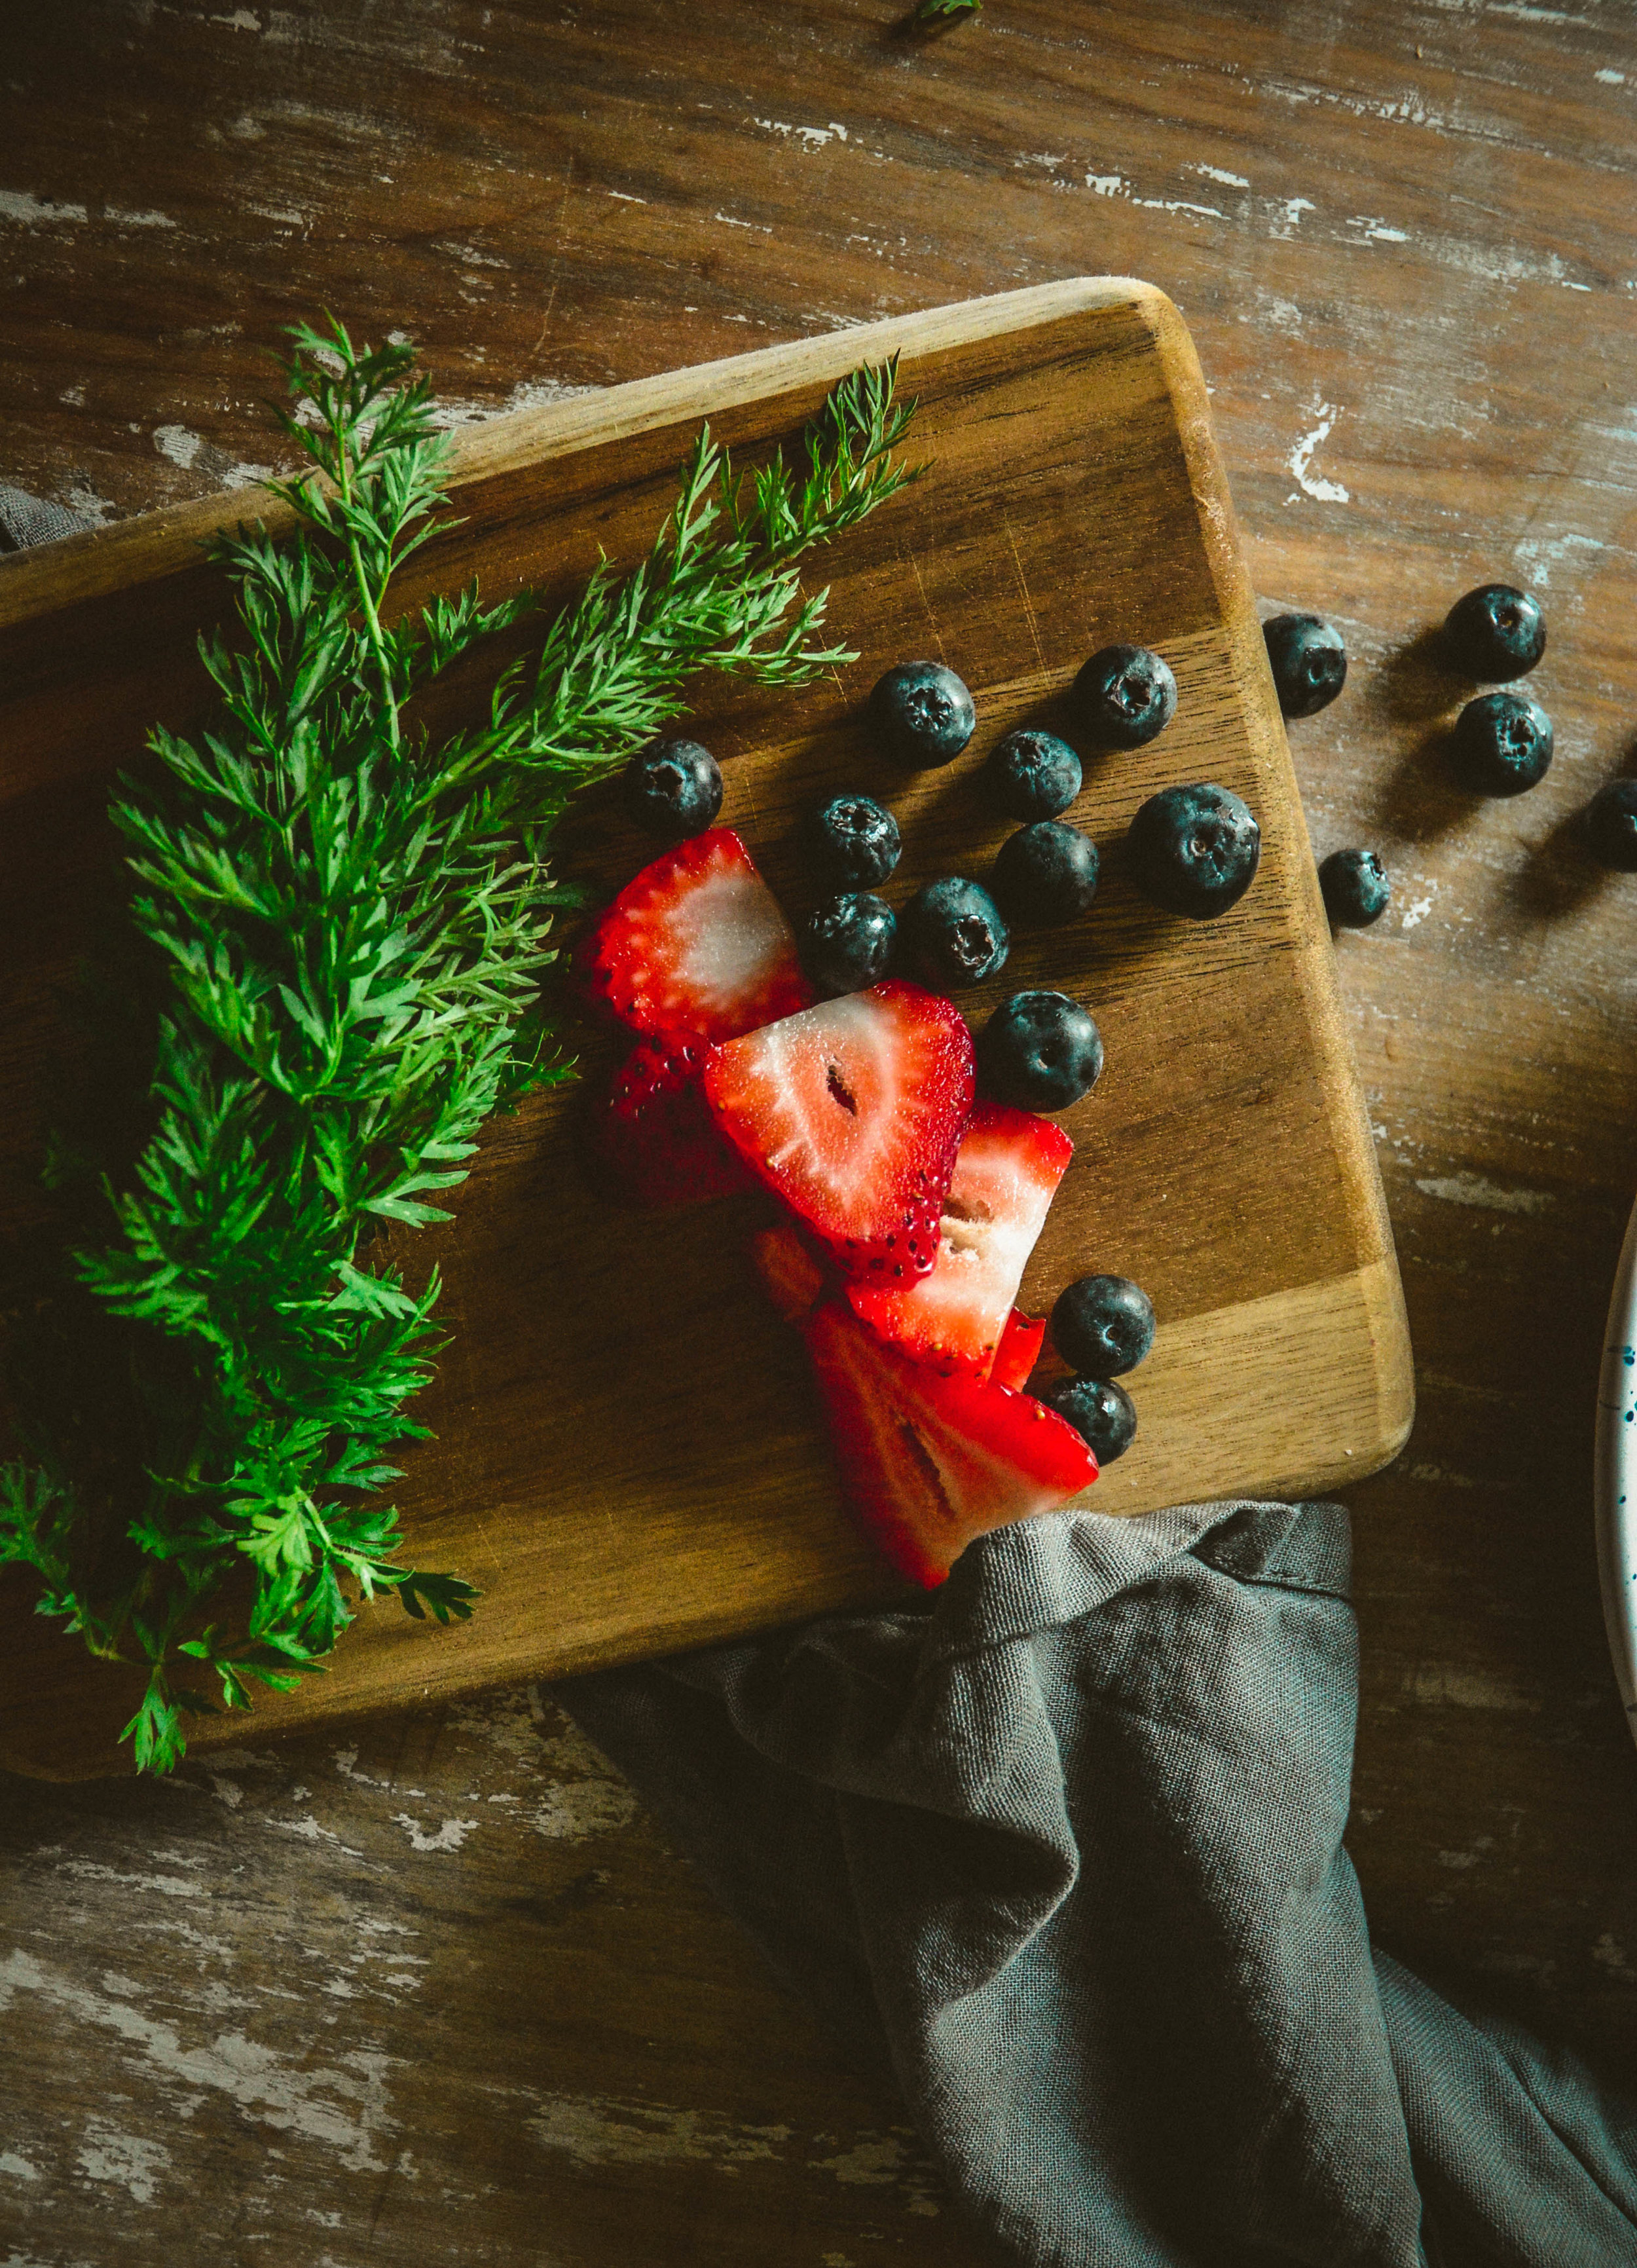 Strawberries, blueberries and greens on cutting board